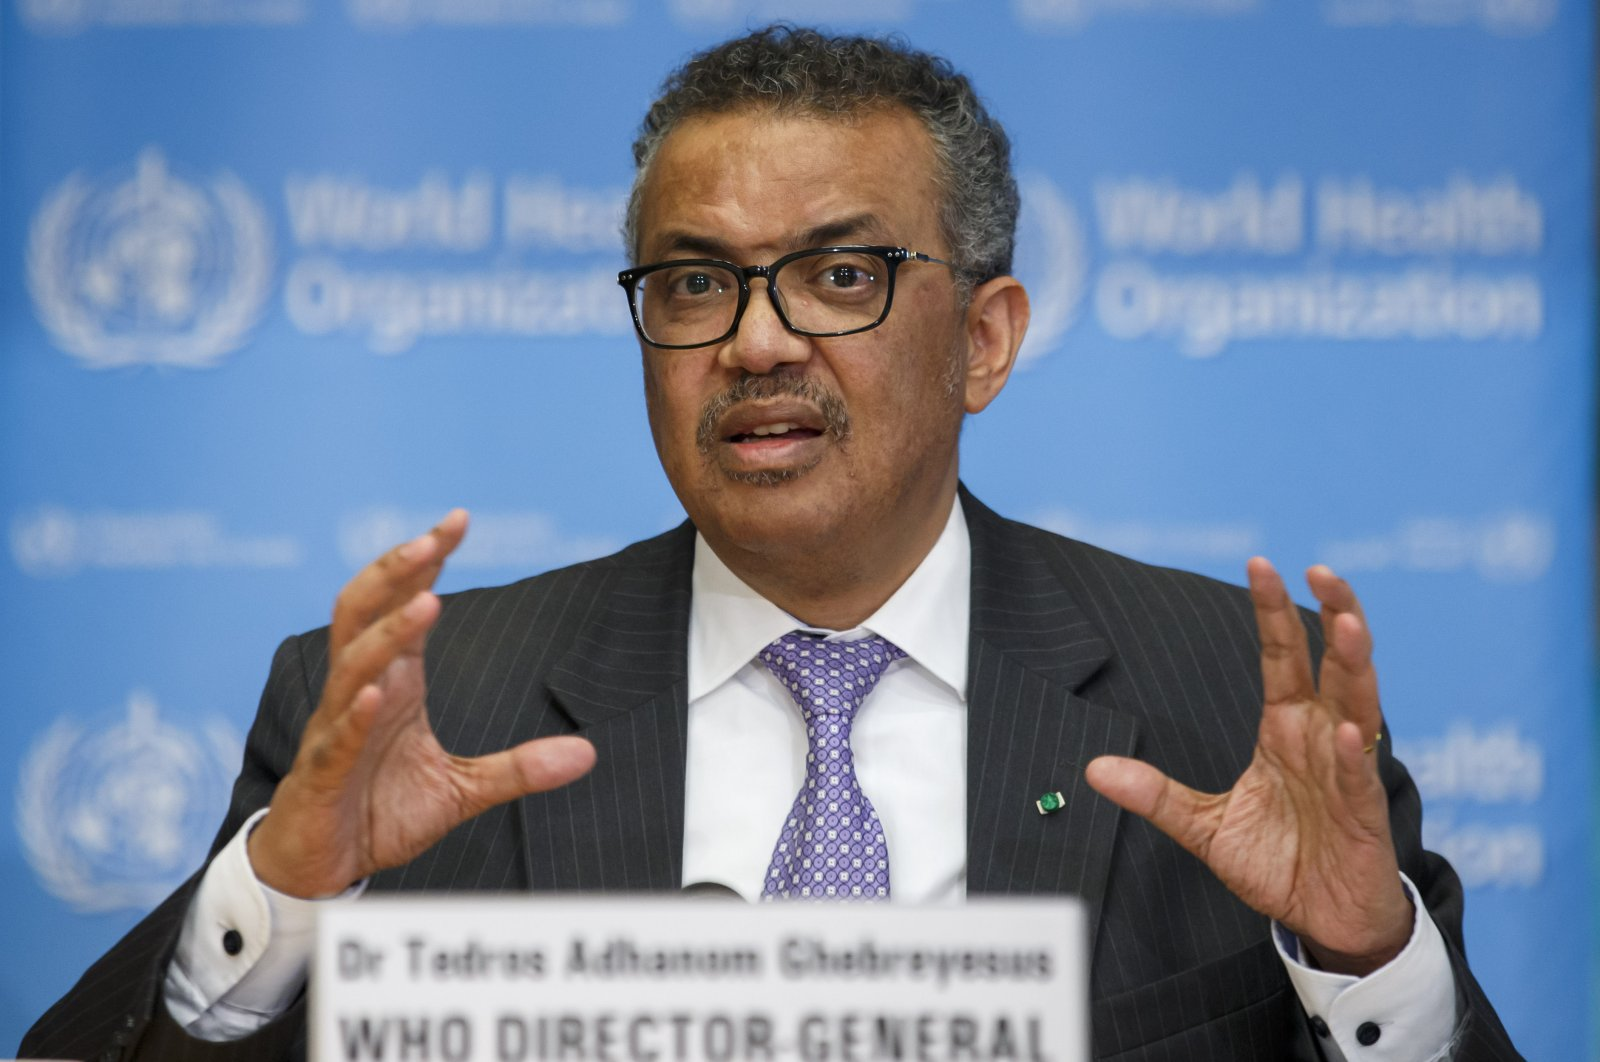 Tedros Adhanom Ghebreyesus, director-general of the World Health Organization speaks during a news conference on updates regarding COVID-19, at the WHO headquarters in Geneva, Switzerland, March 9, 2020. (AP Photo)